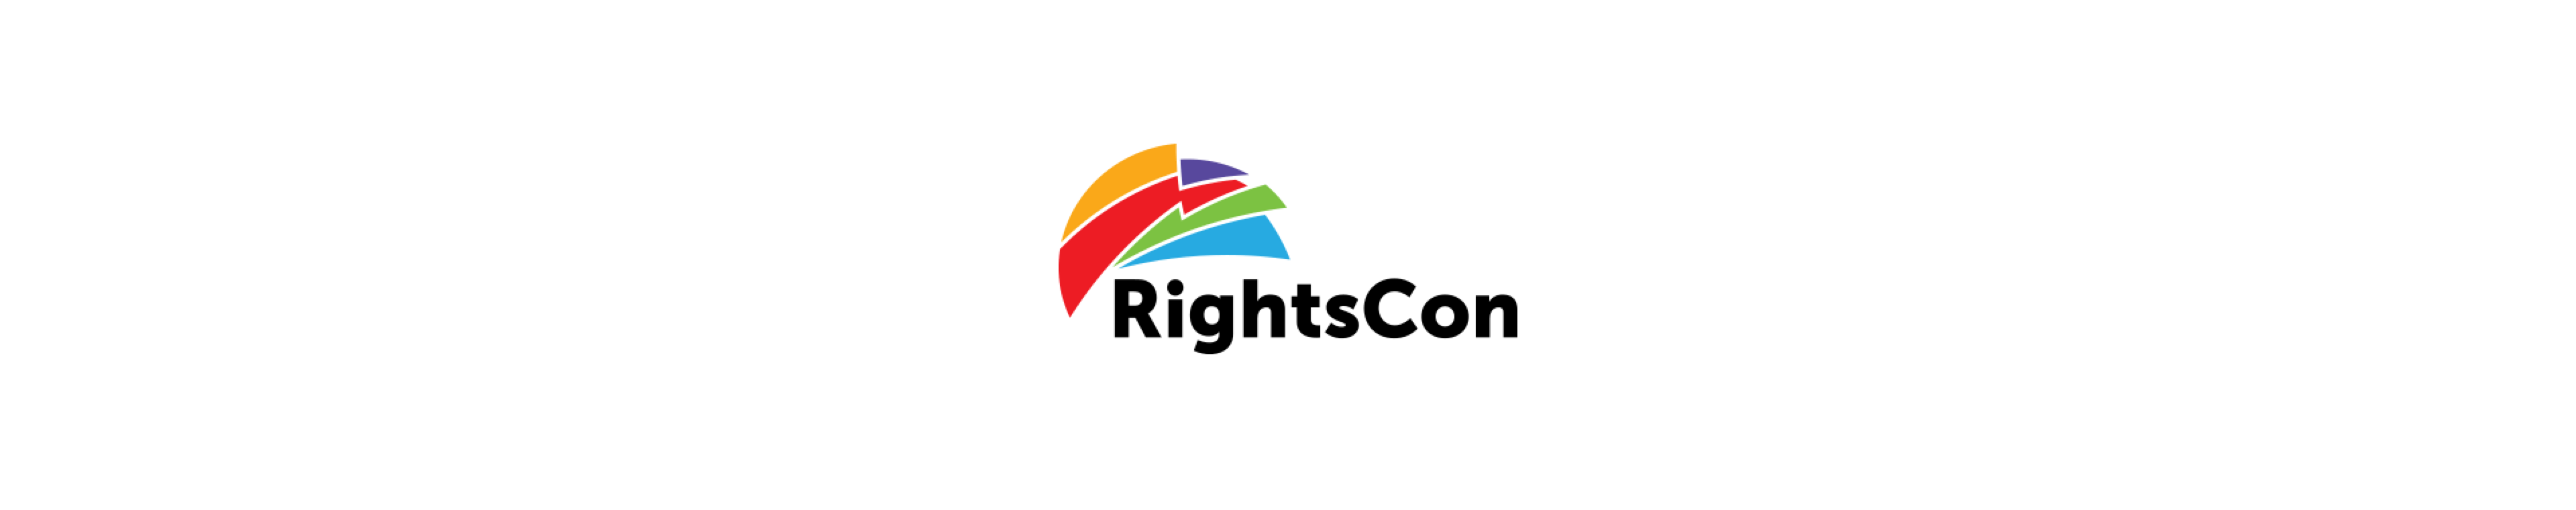 Tresorit at RightsCon: The Business of Privacy